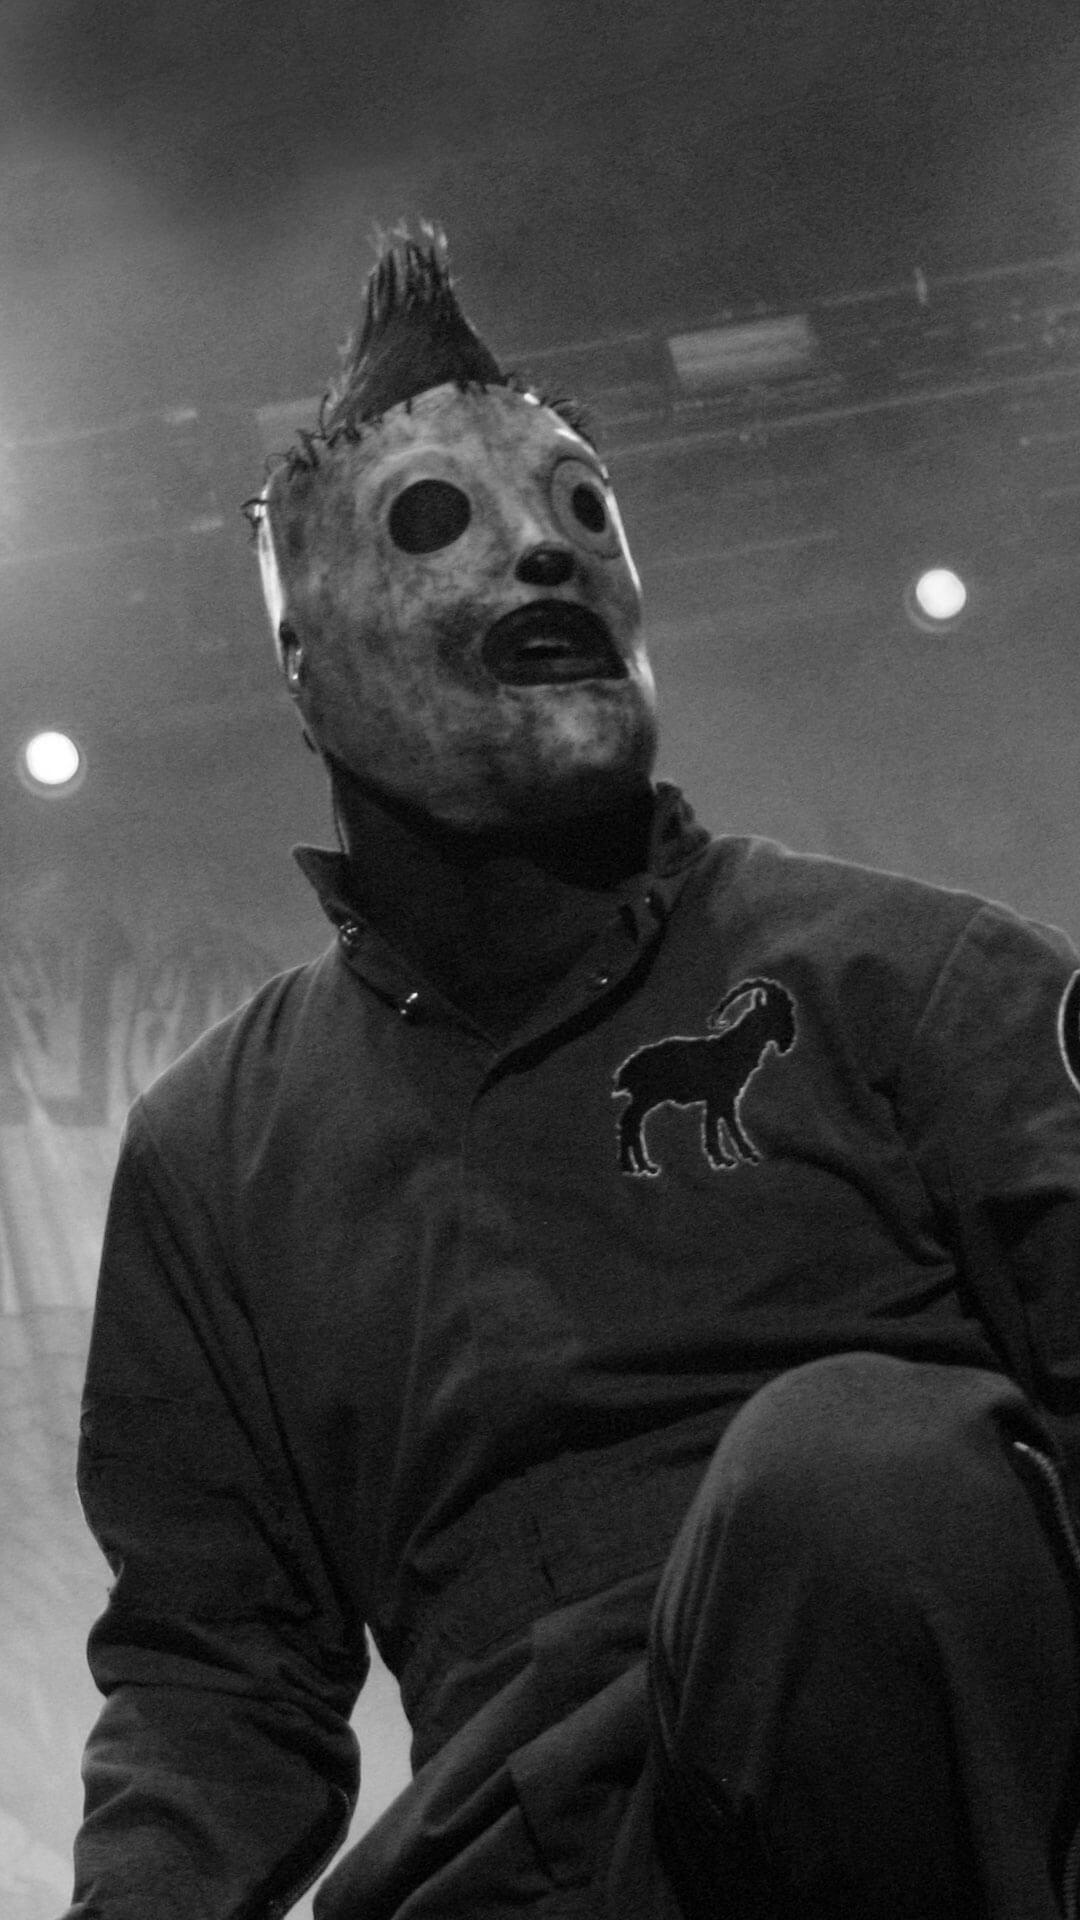 Corey Taylor 2016 Wallpapers 1080x1920